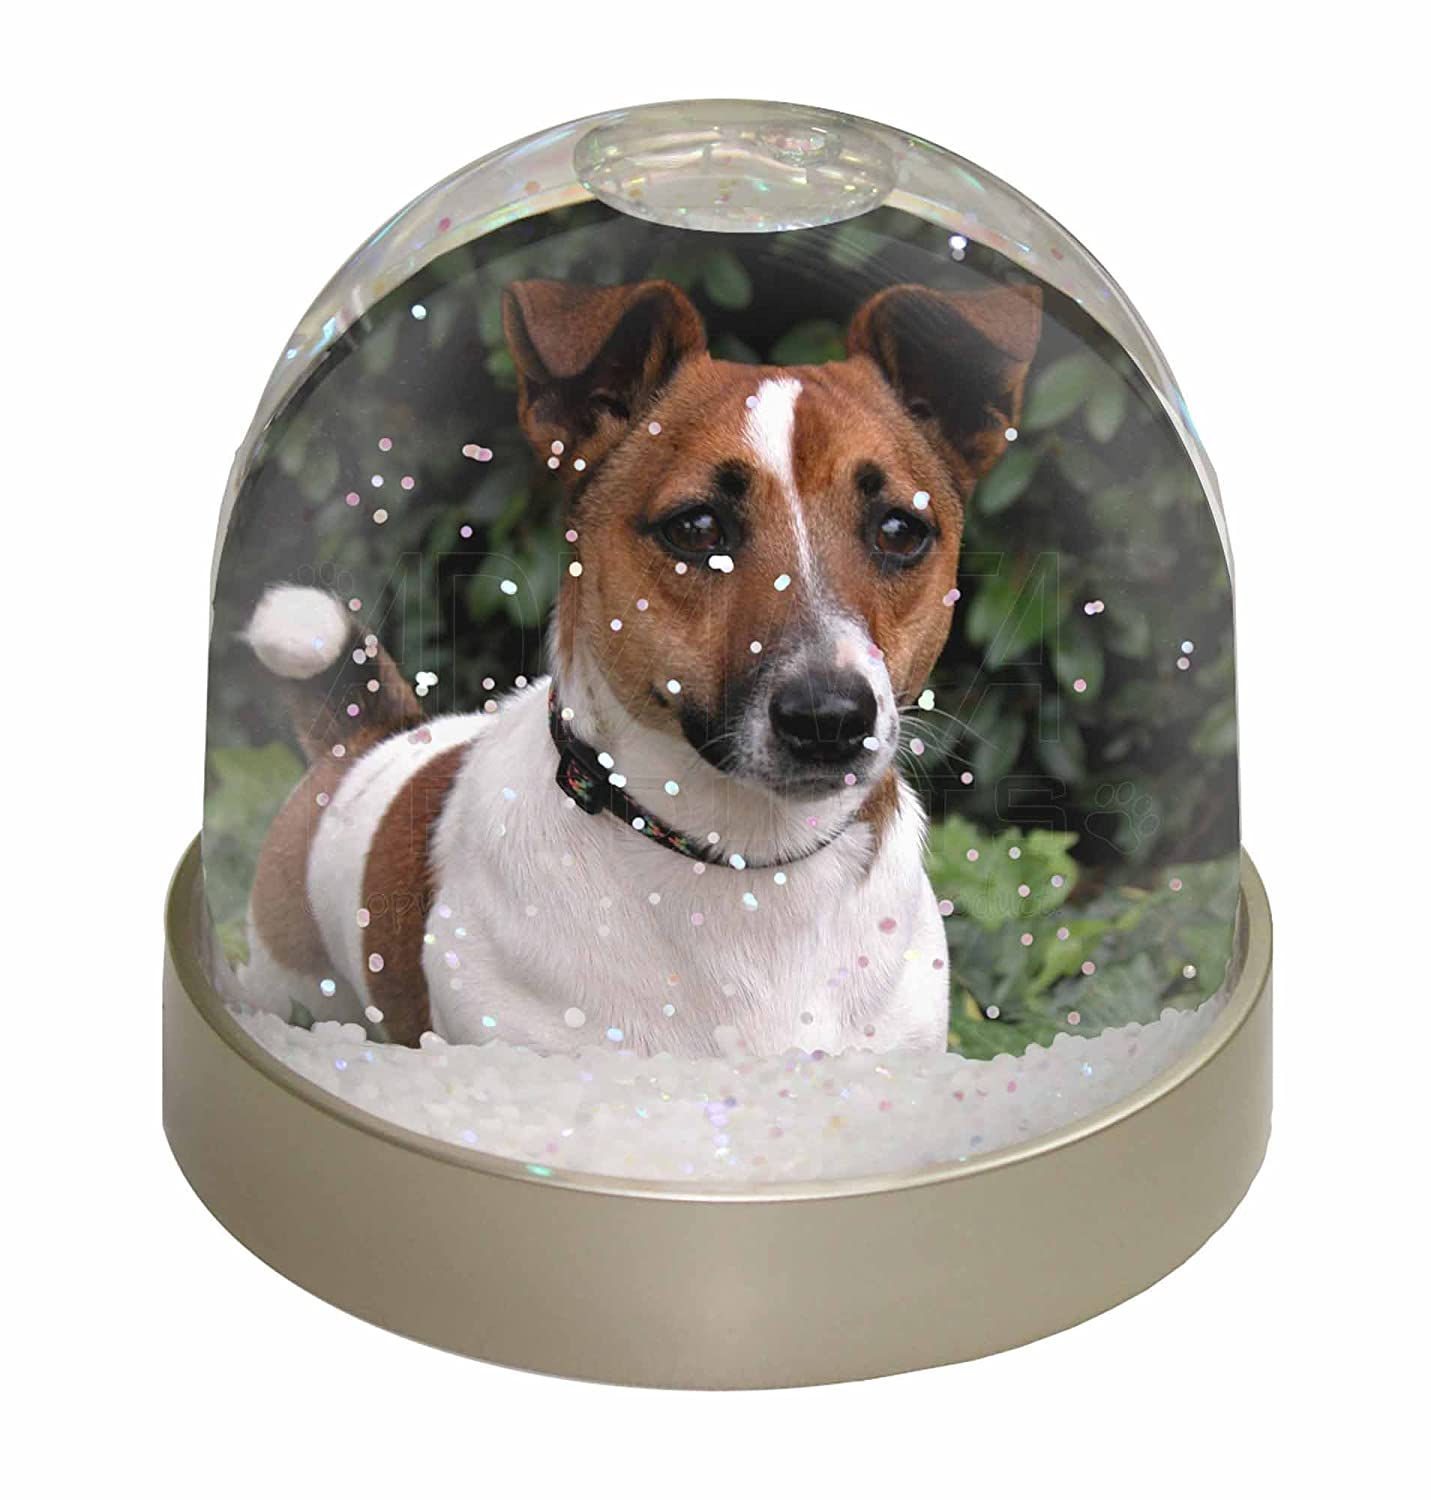 Advanta Jack Russell Terrier Dog Snow Dome Globe Waterball Gift, Multi-Colour, 9.2 x 9.2 x 8 cm Advanta Products AD-JR55GL